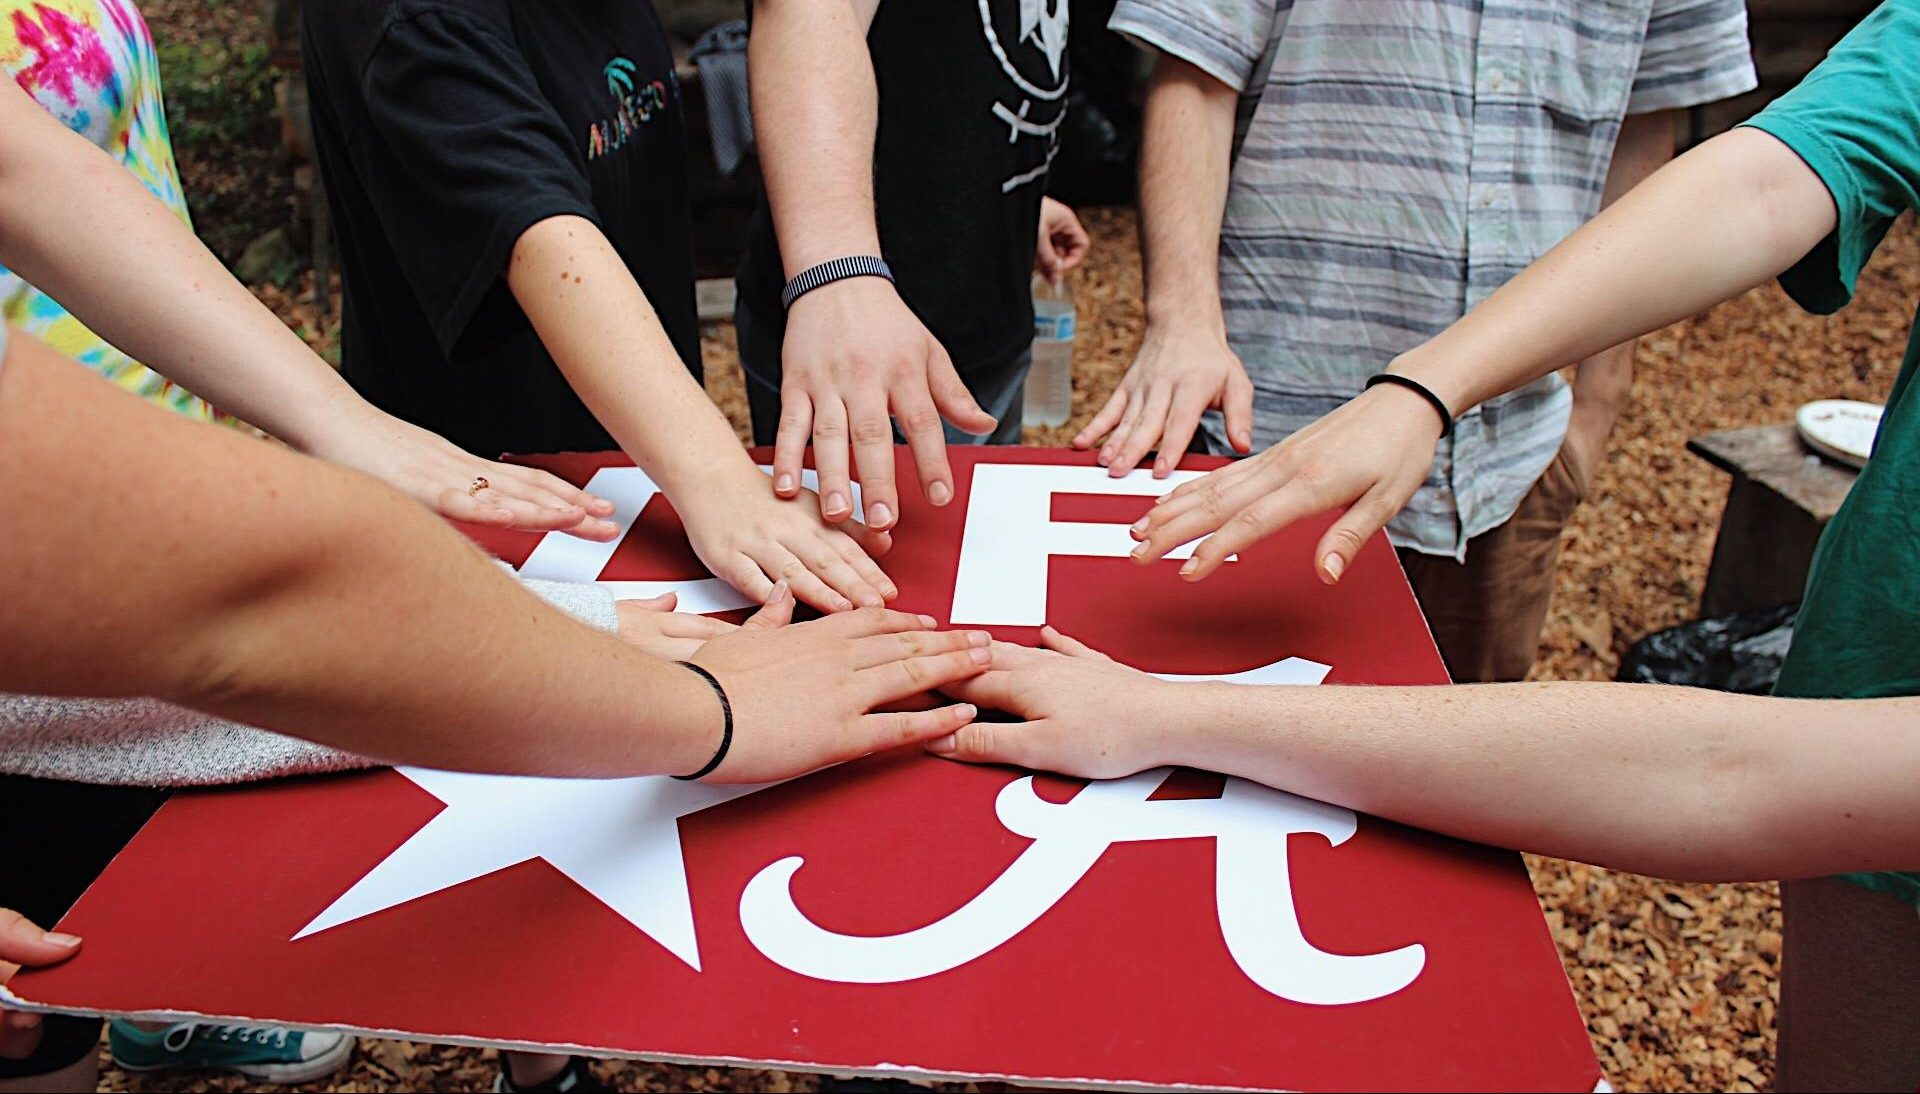 Main Programs Story Image - Multiple student hands touch red logo of Design for America.